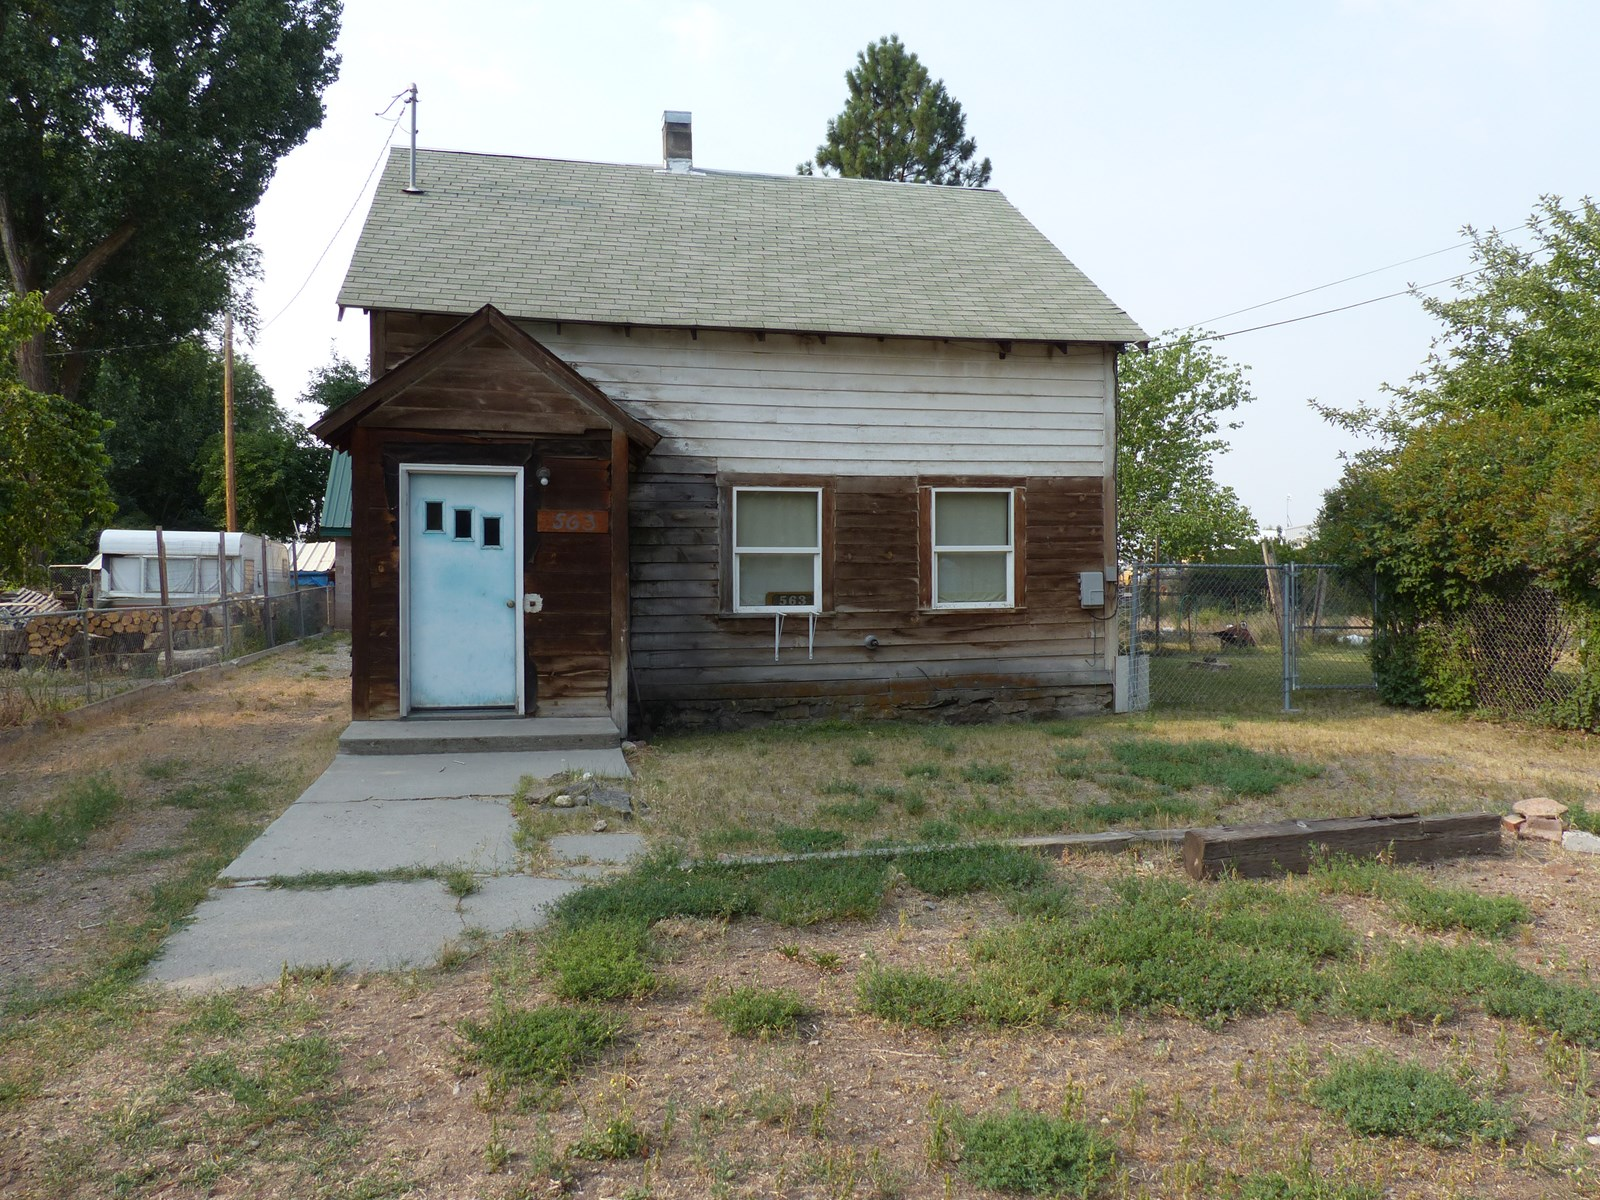 OLDER 2 STORY HOME FOR SALE IN BURNS